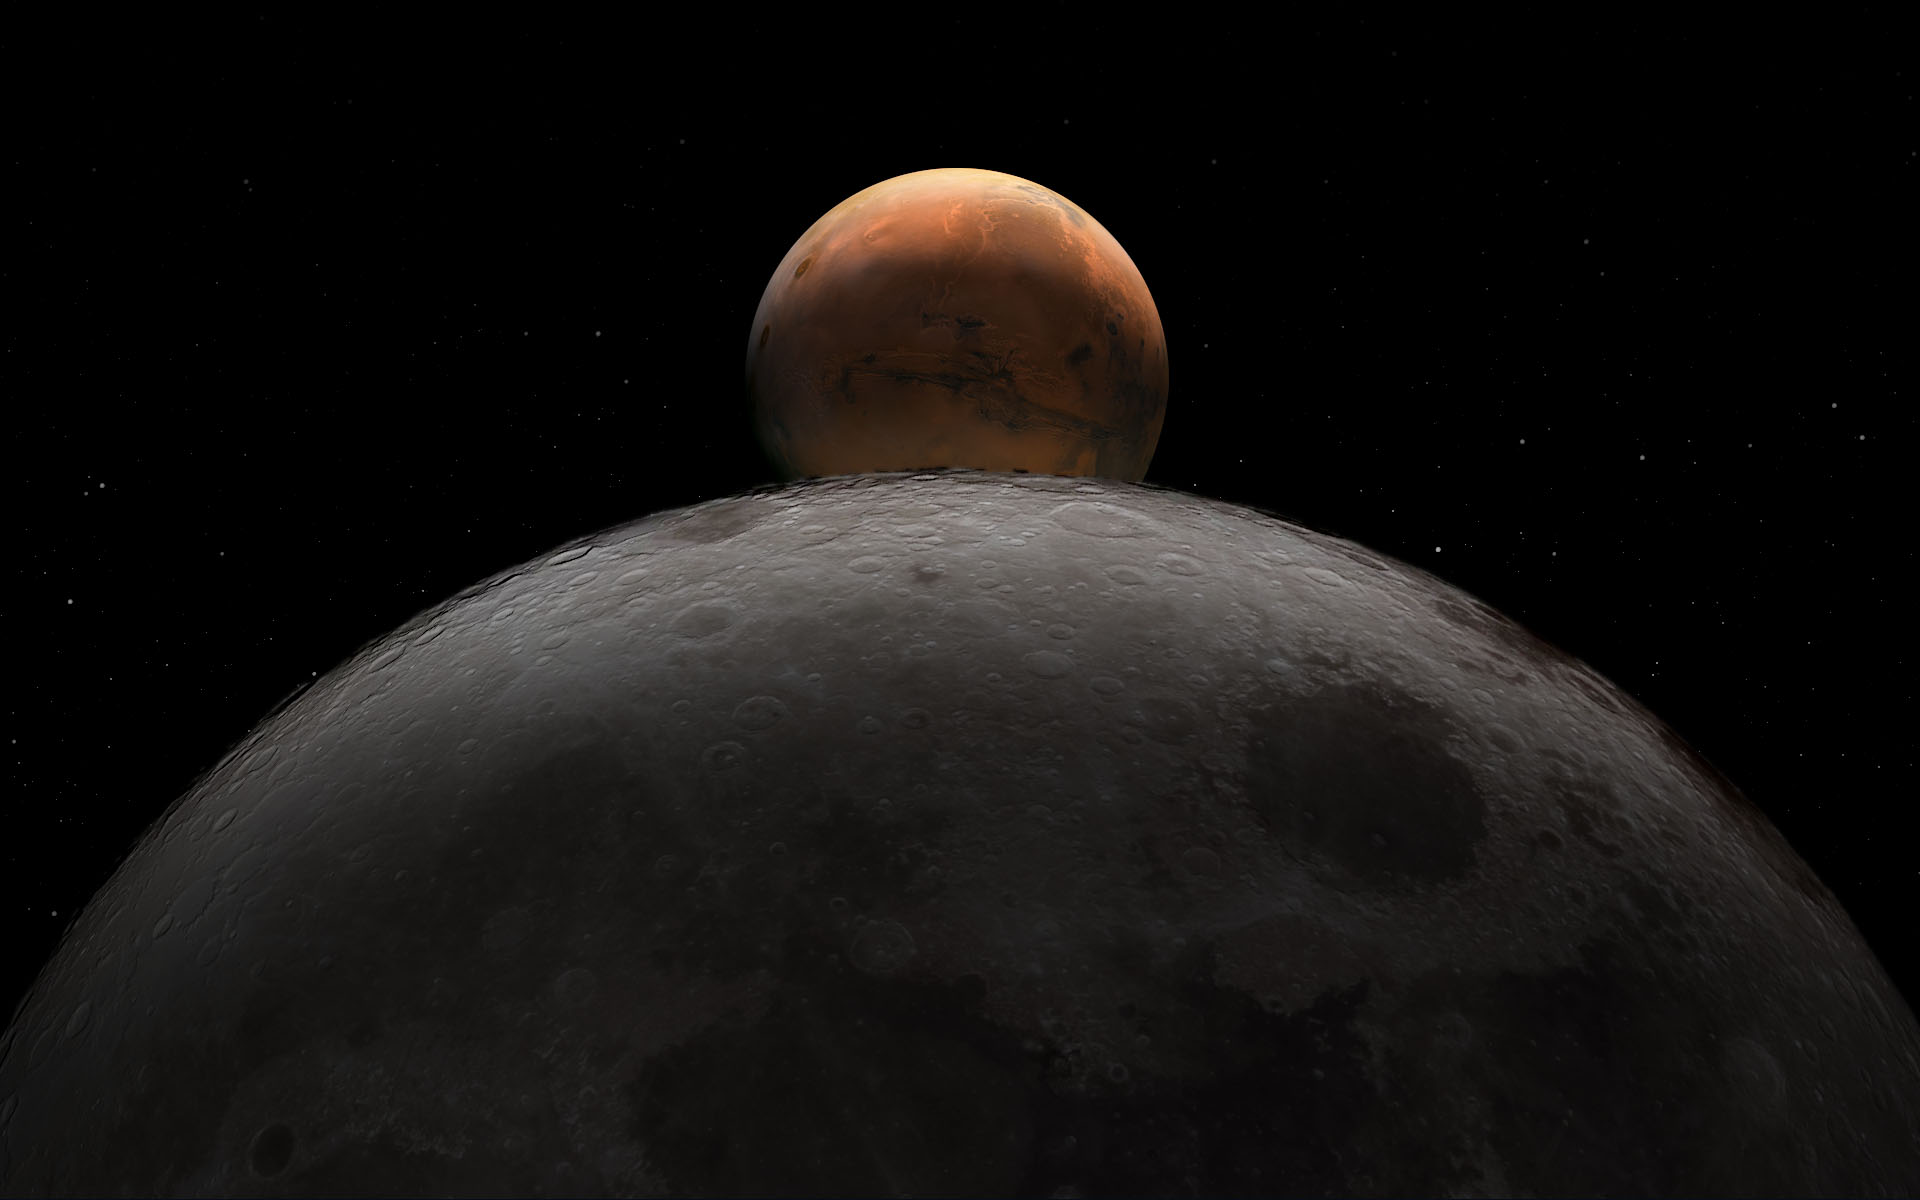 mars compared to the moon - HD 1920×1200